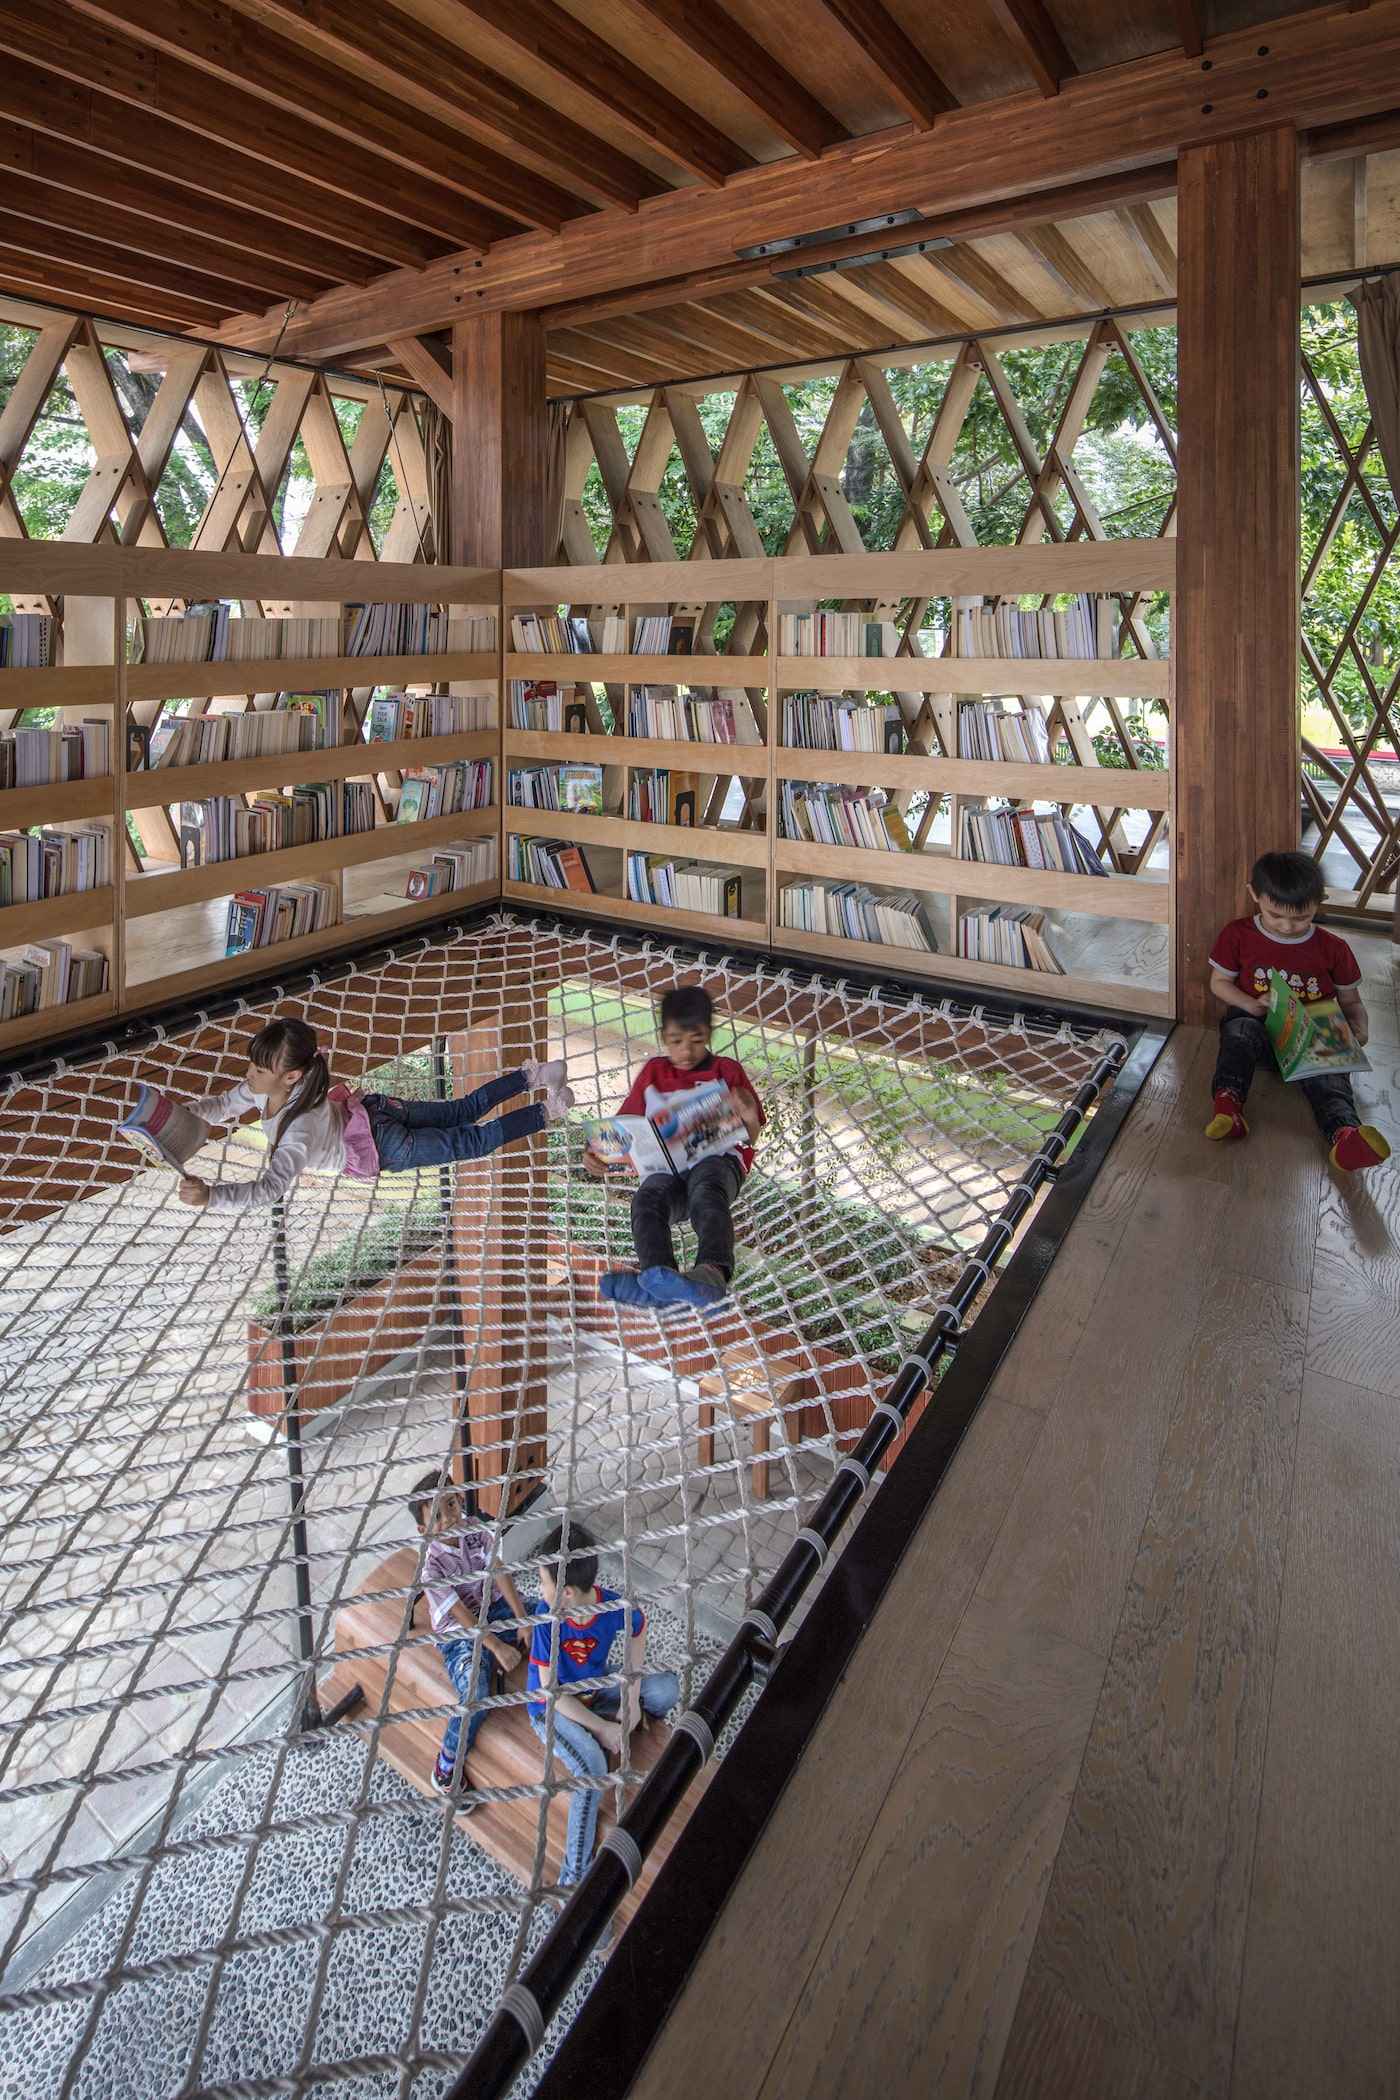 Kids reading on rope hammock floor in timber library